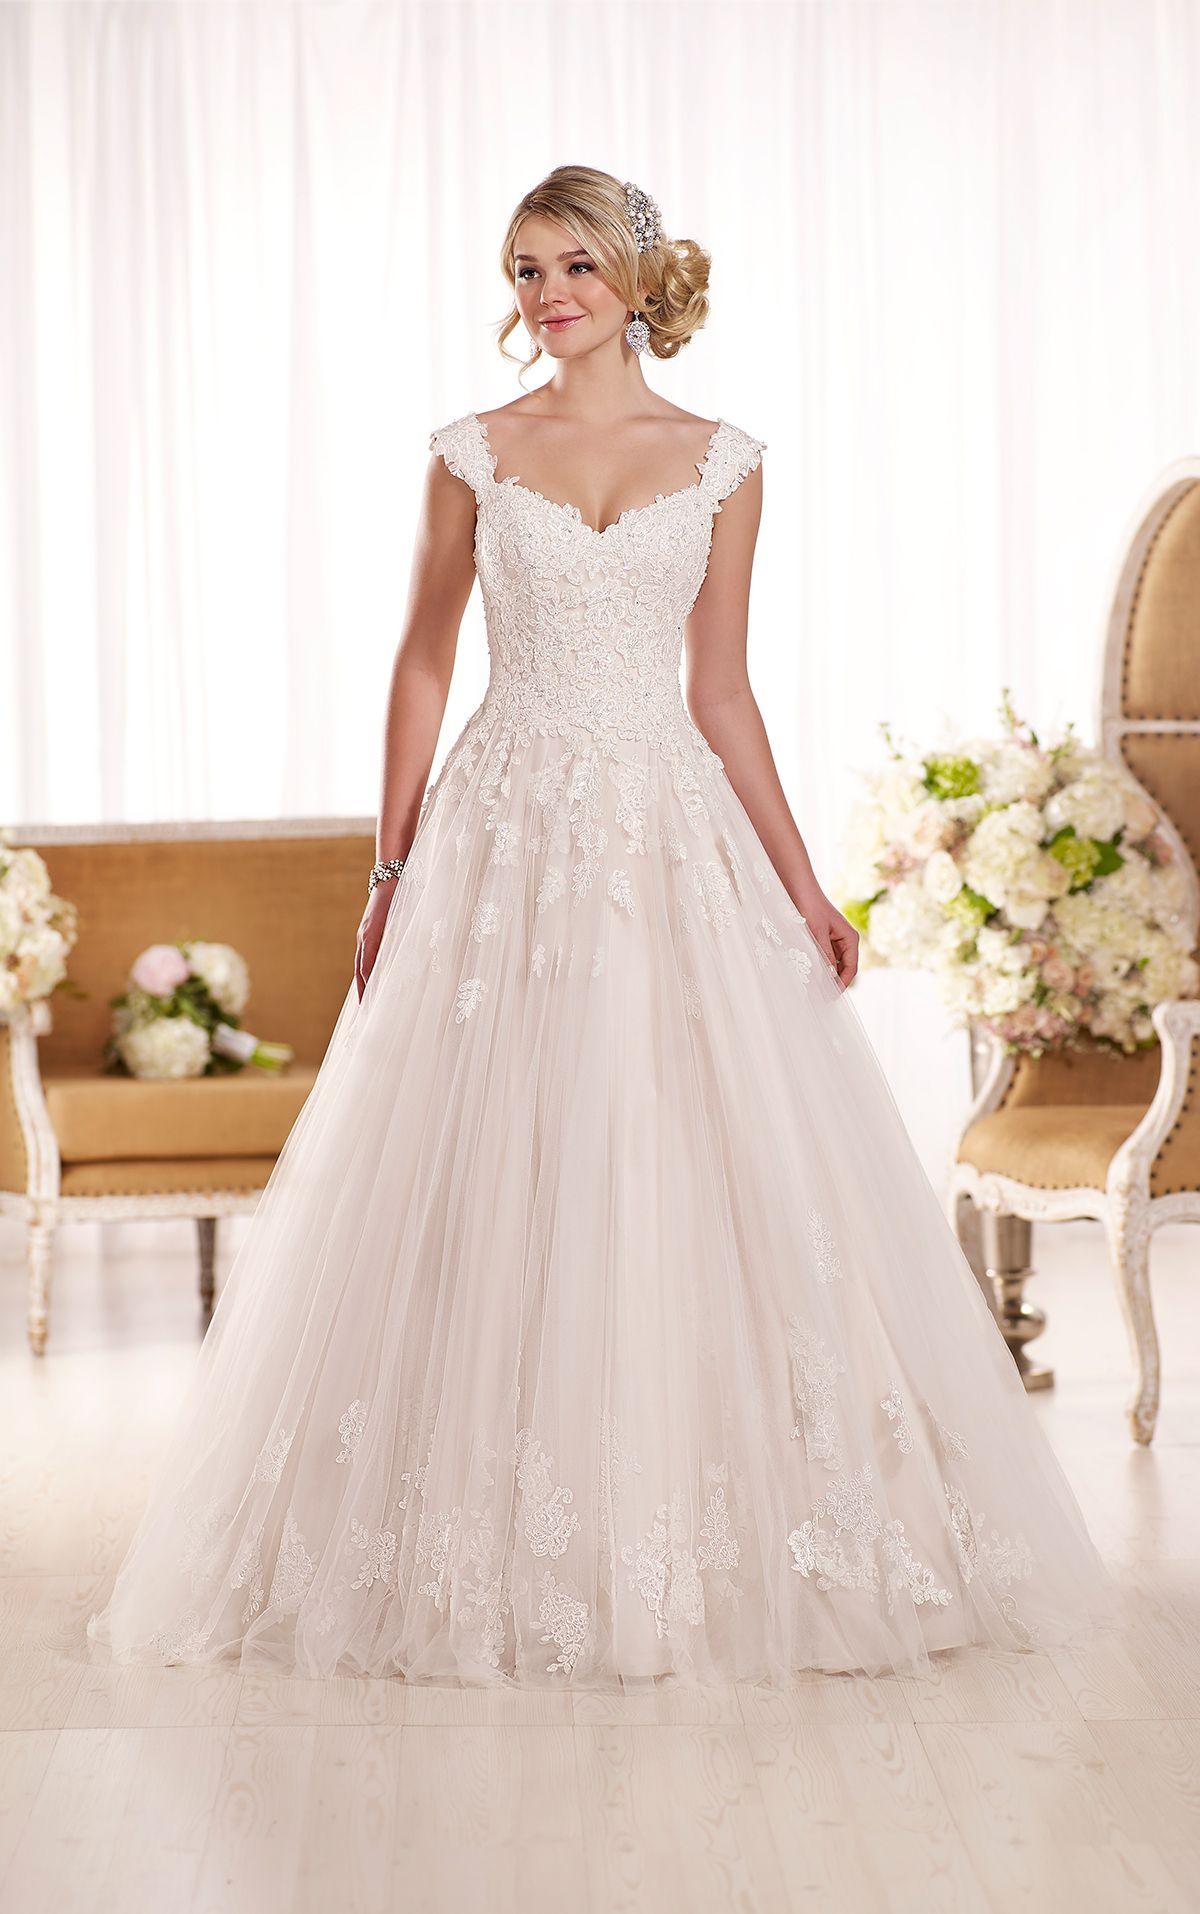 Lace wedding dress with cap sleeves from essense of australia